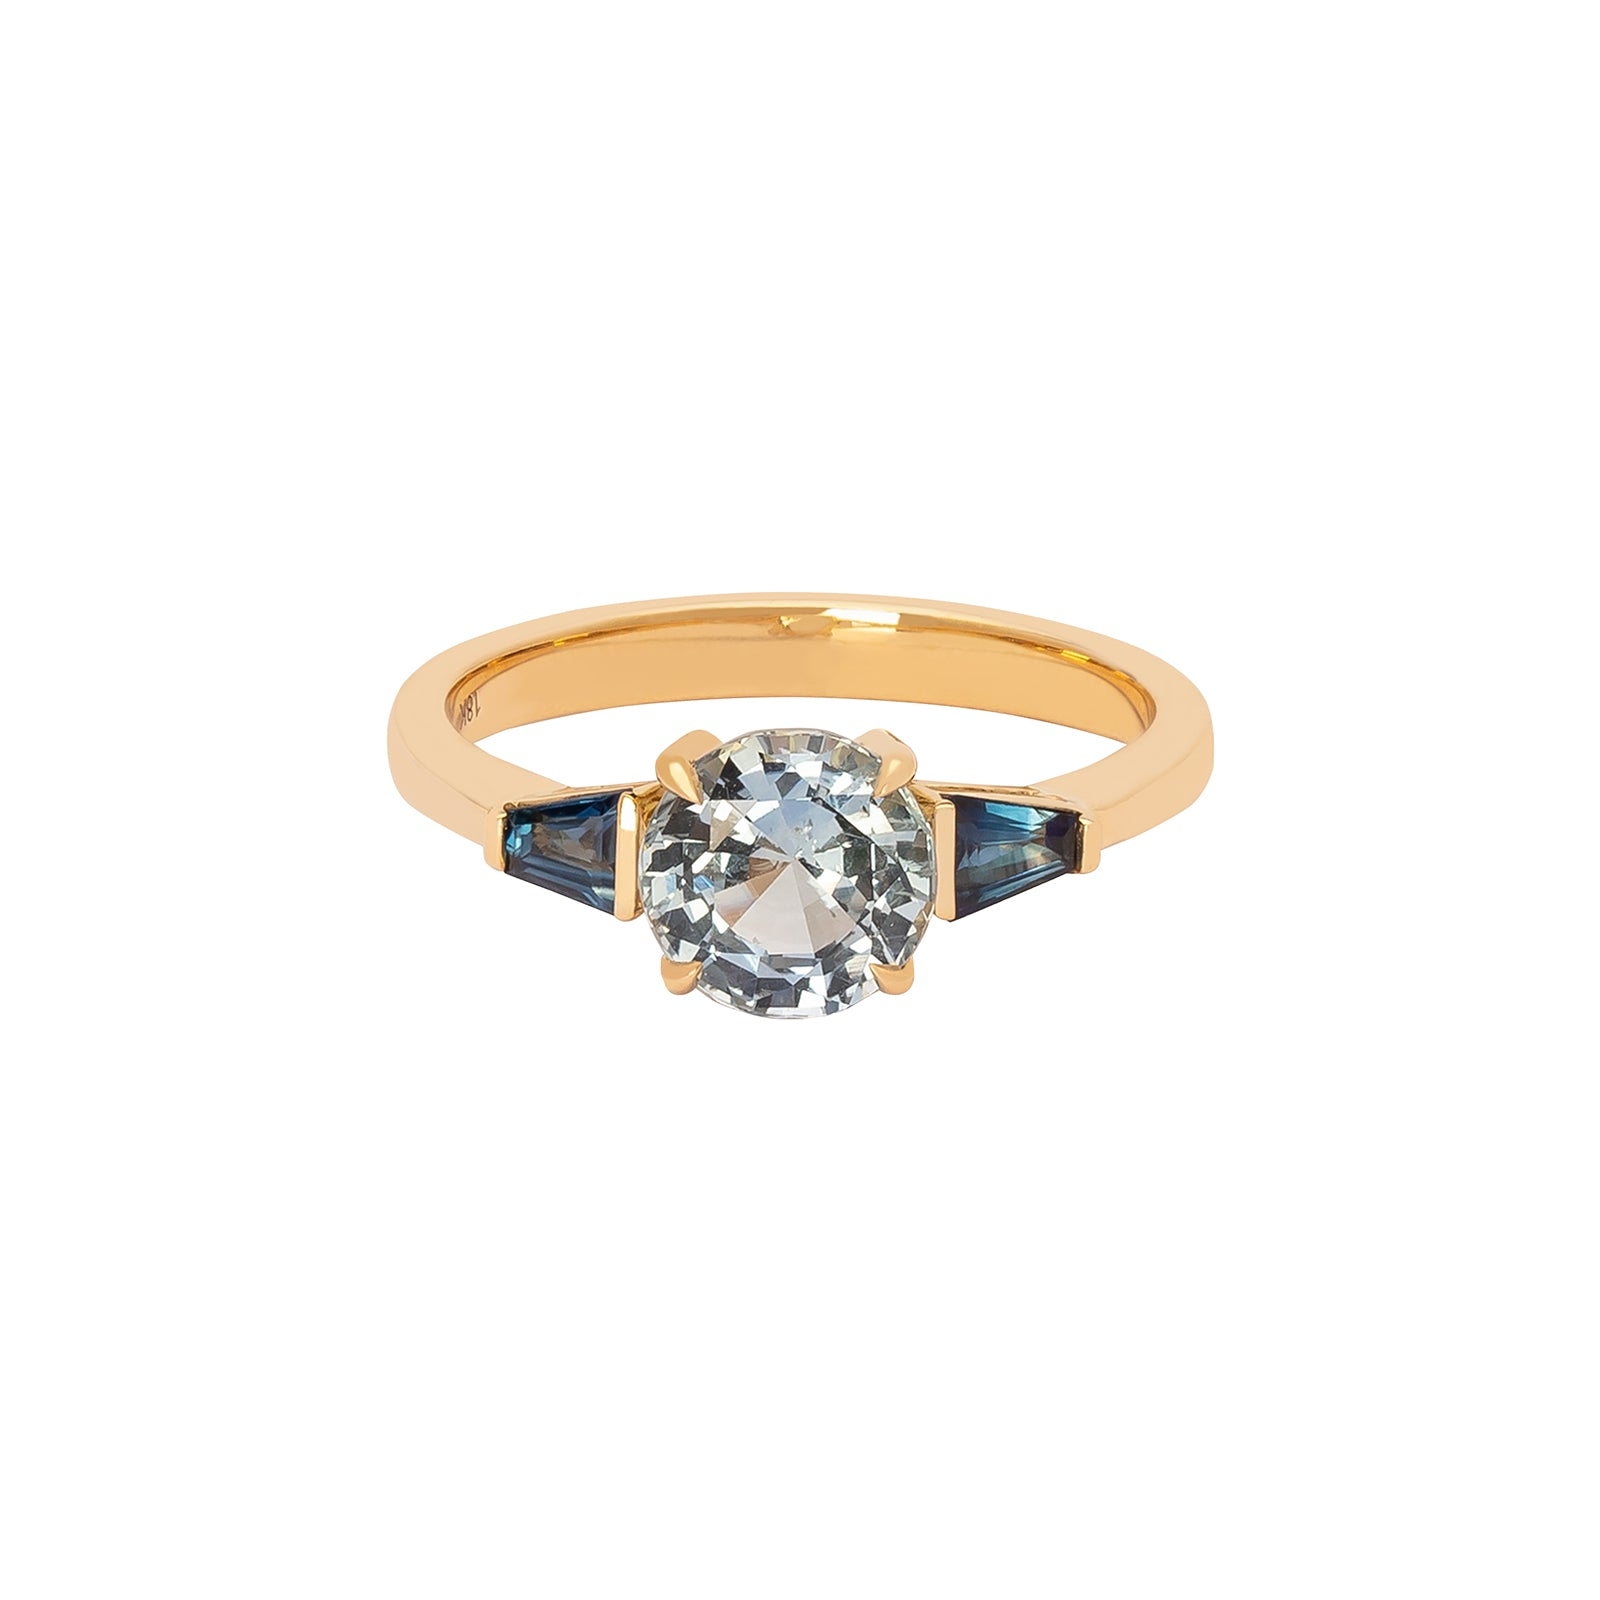 YI Collection Star Light Ring - Sapphire - Rings - Broken English Jewelry